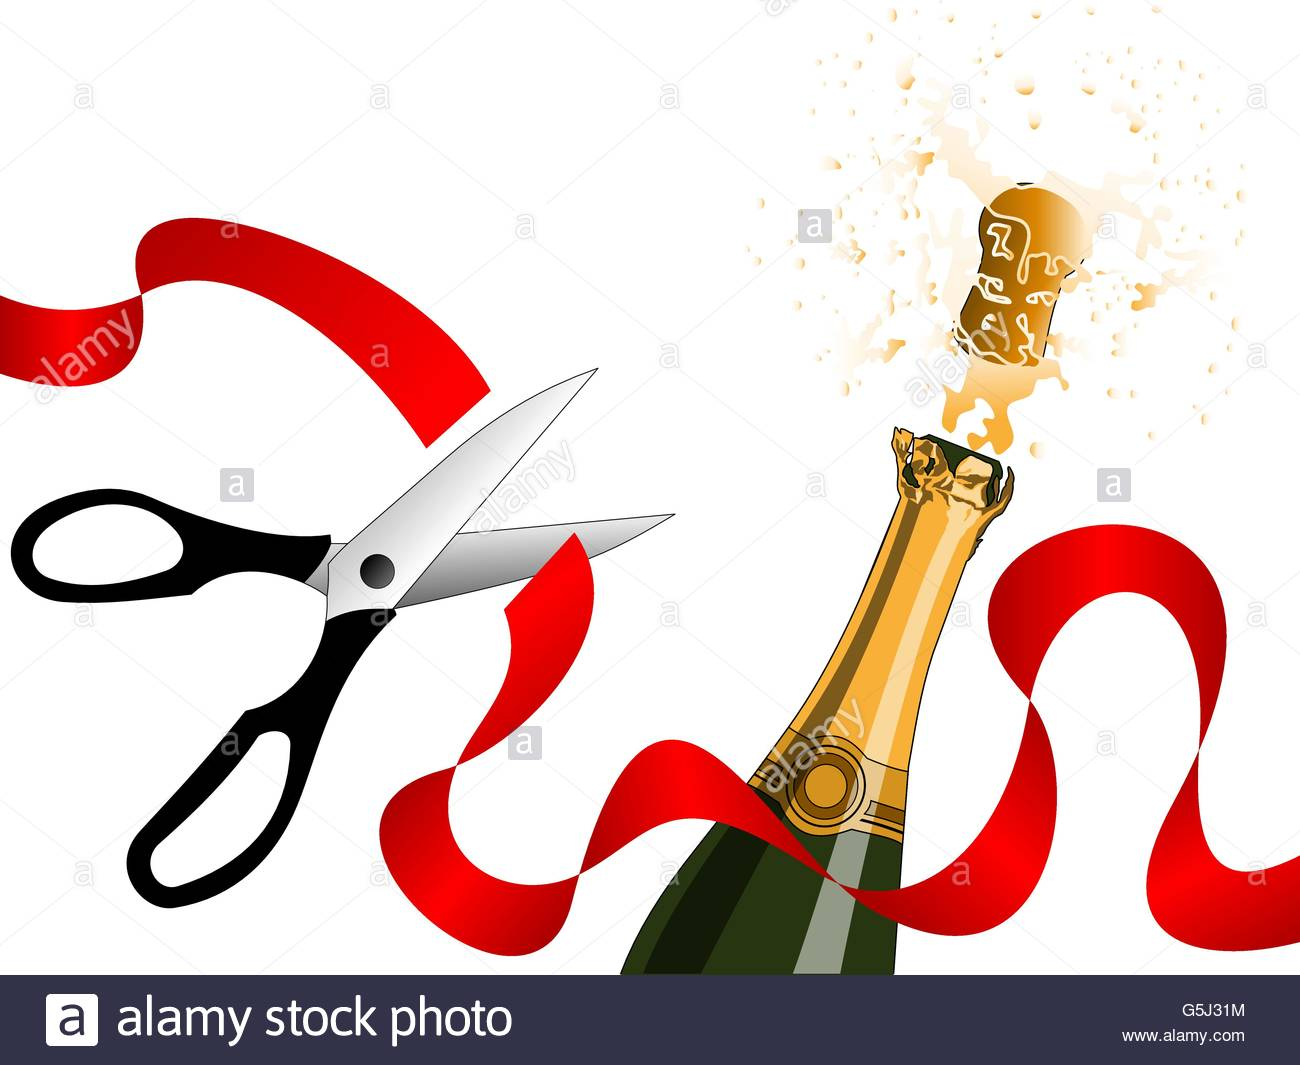 1300x1065 Champagne Splashing And Scissors Cutting Red Ribbon. Concept